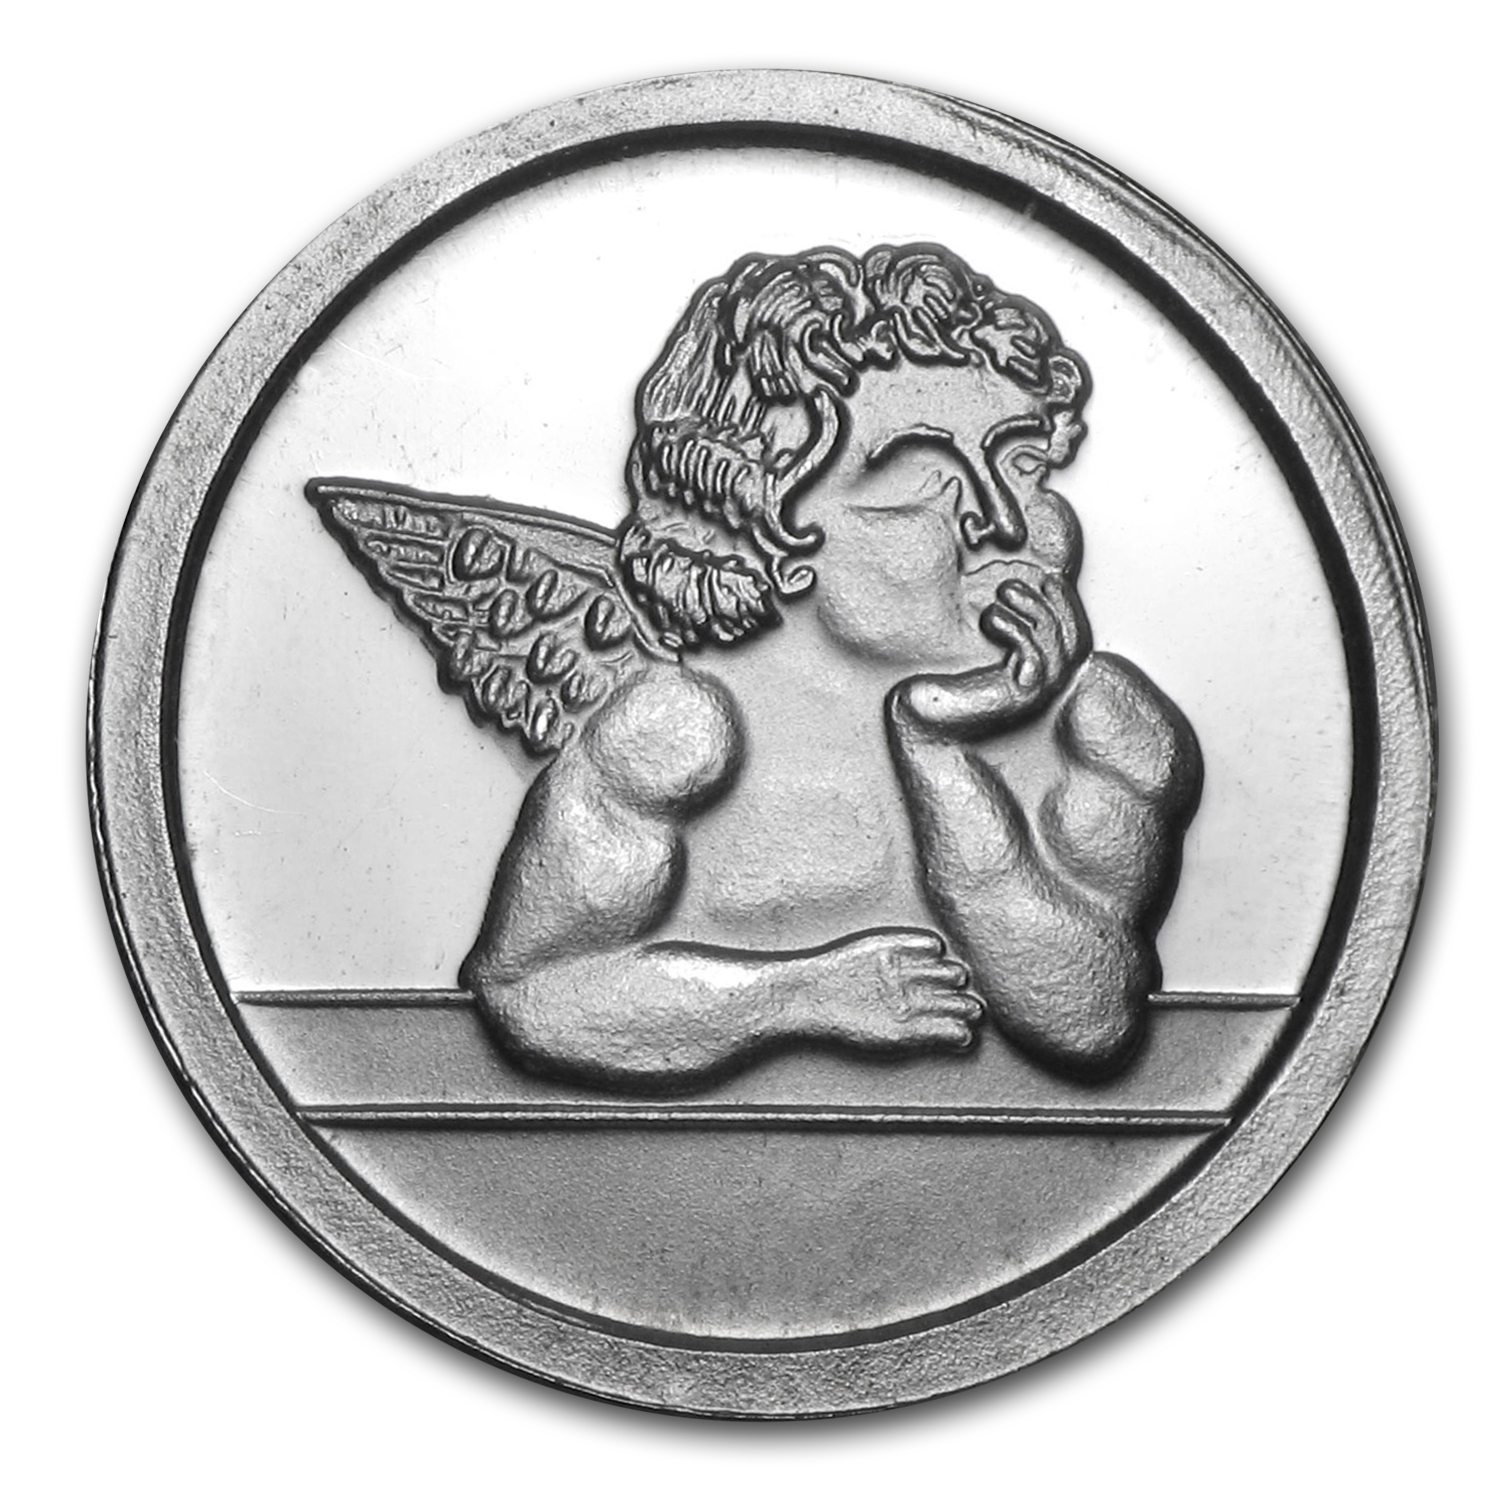 1/20 oz Silver Rounds - Cherub Angel